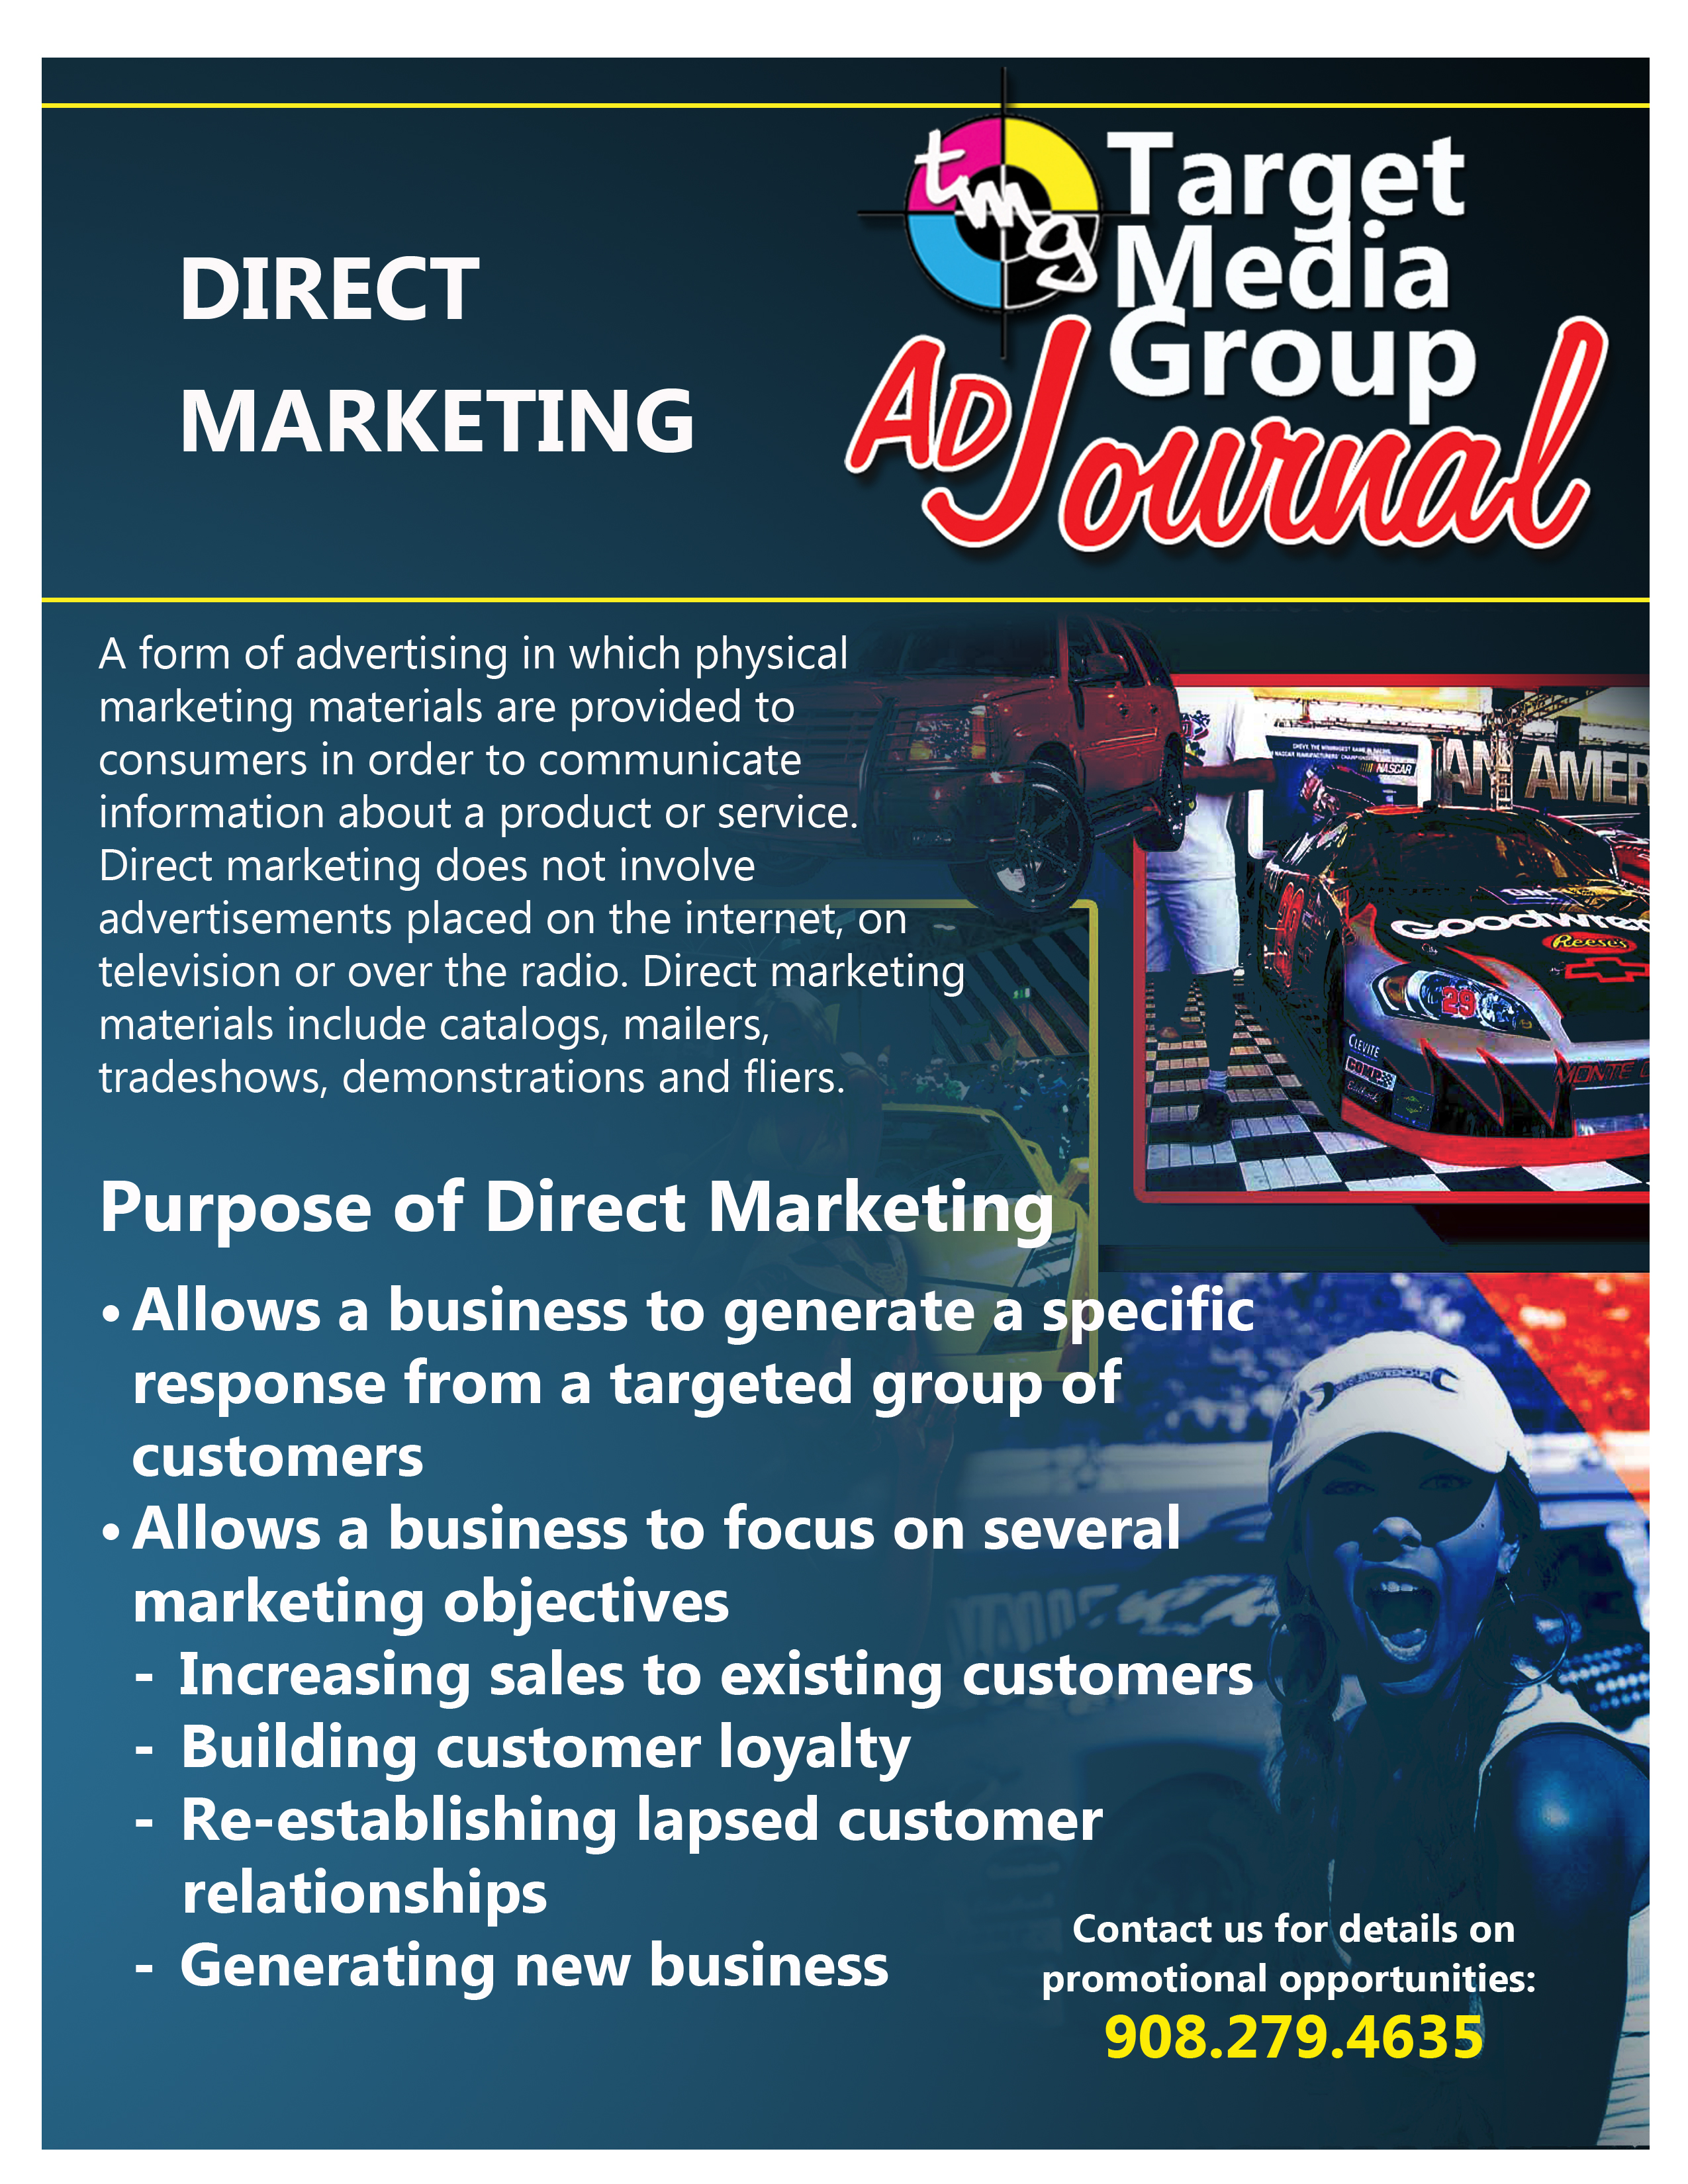 AD_JOURNAL_DMarketing